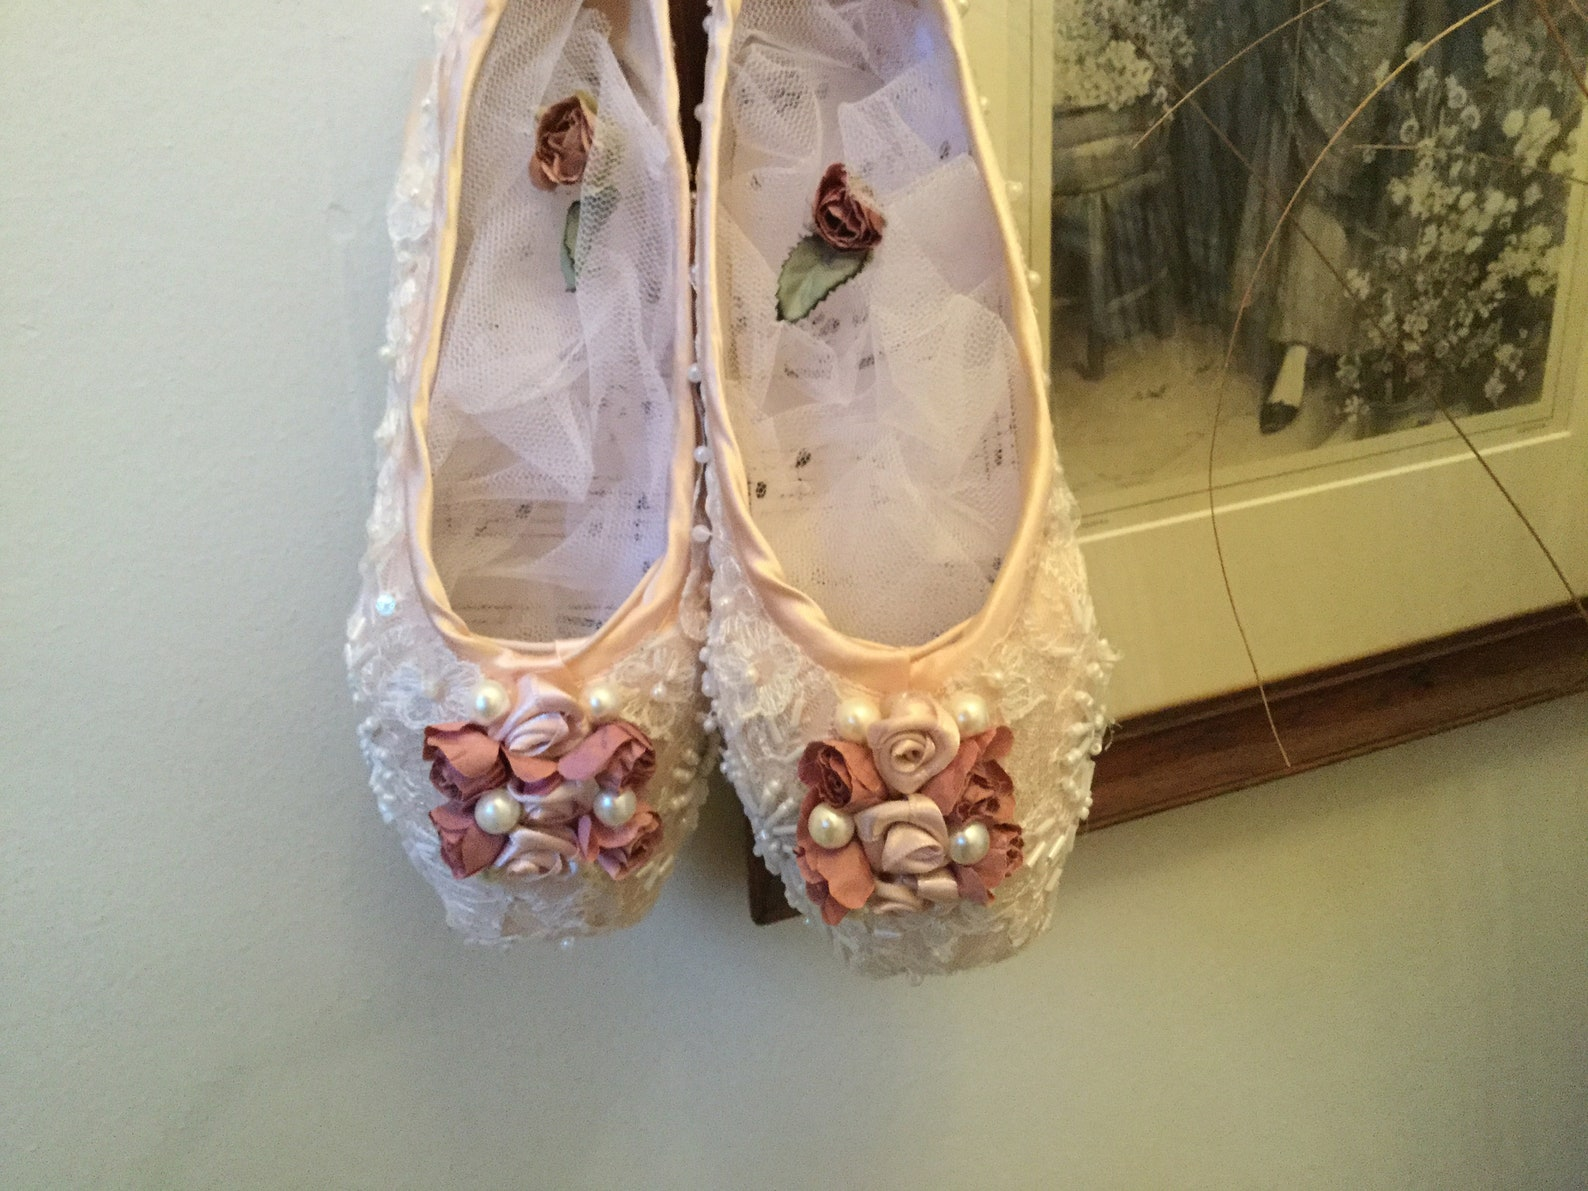 ballet shoes. decorated ballet shoes.